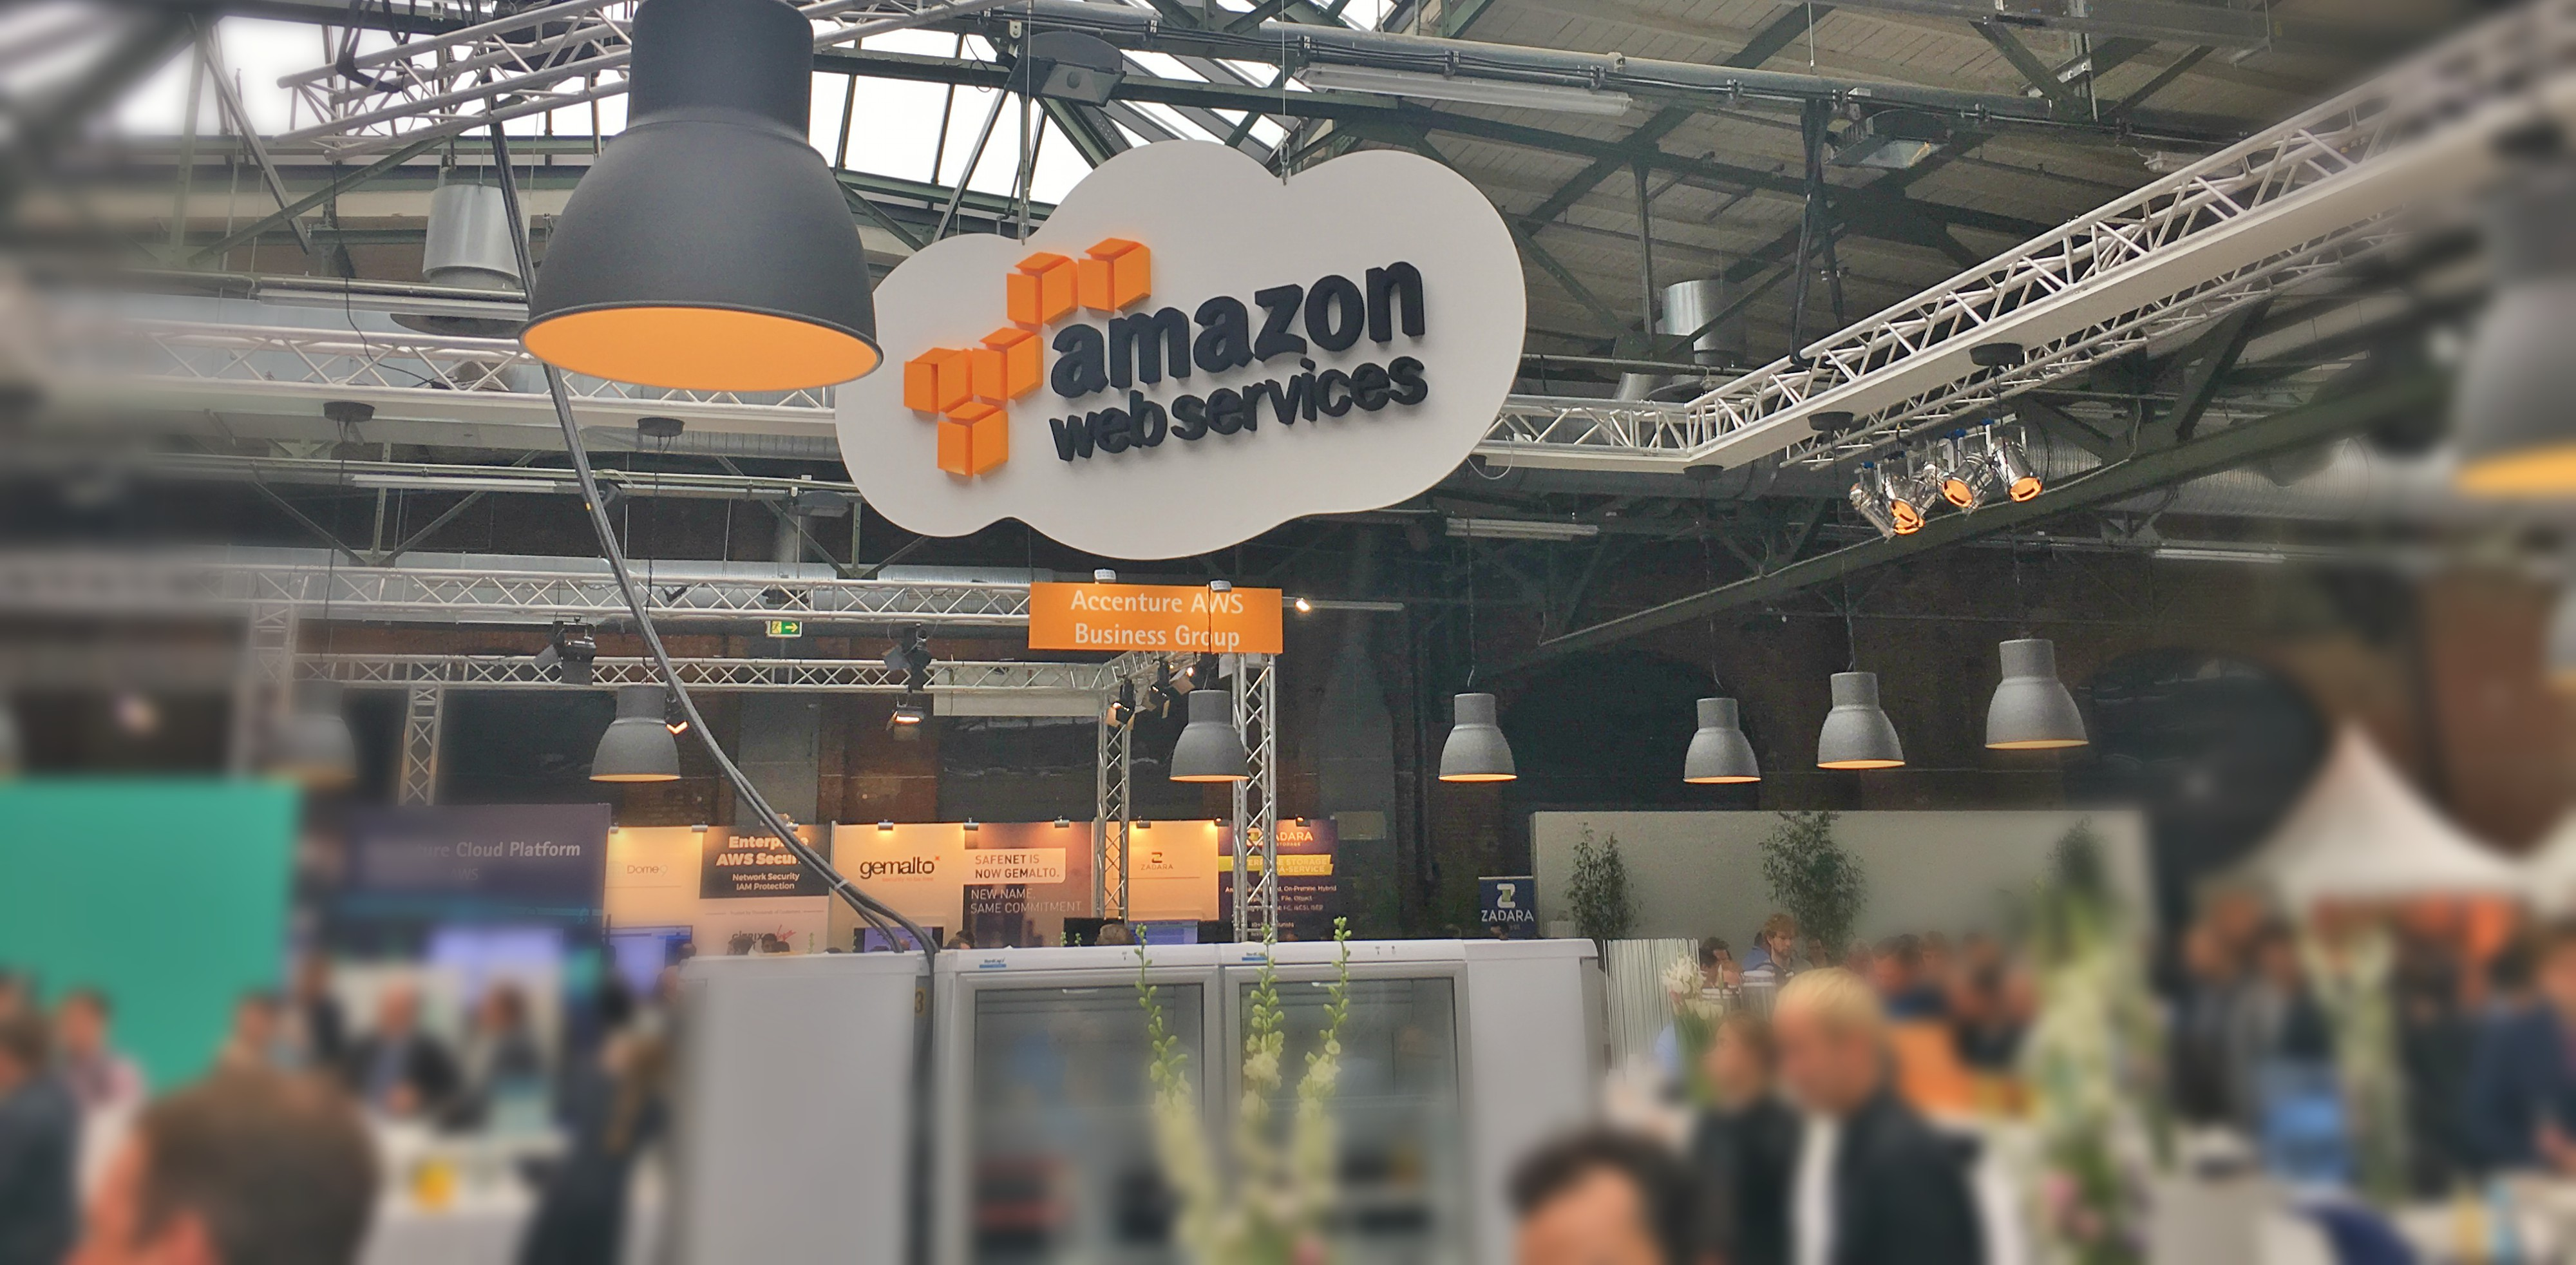 Recap of the AWS summit in Berlin